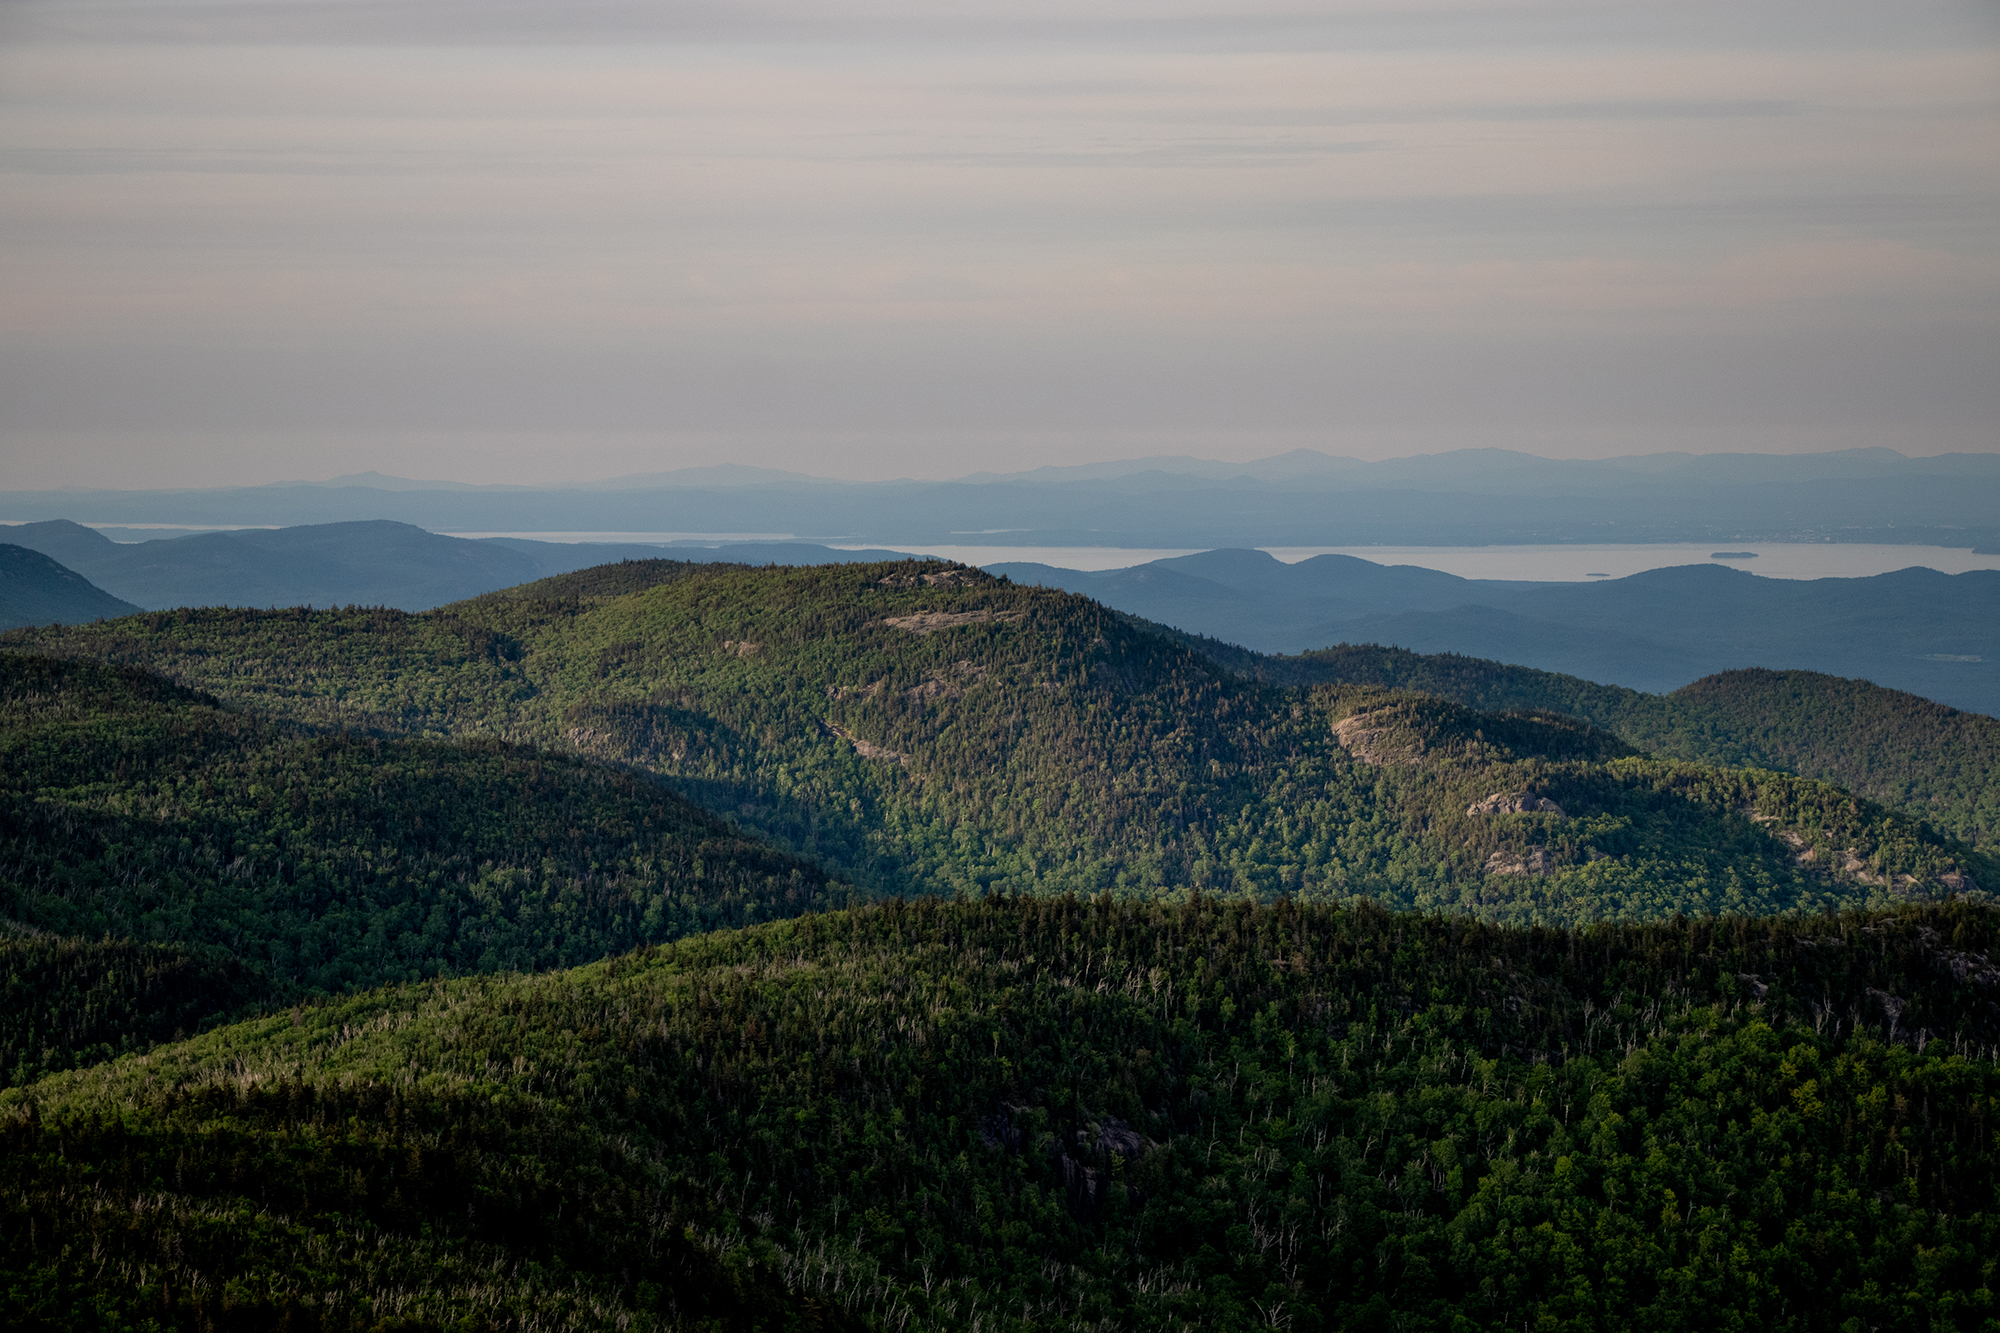 2019 NYS Legislative Session | An Adirondack Review